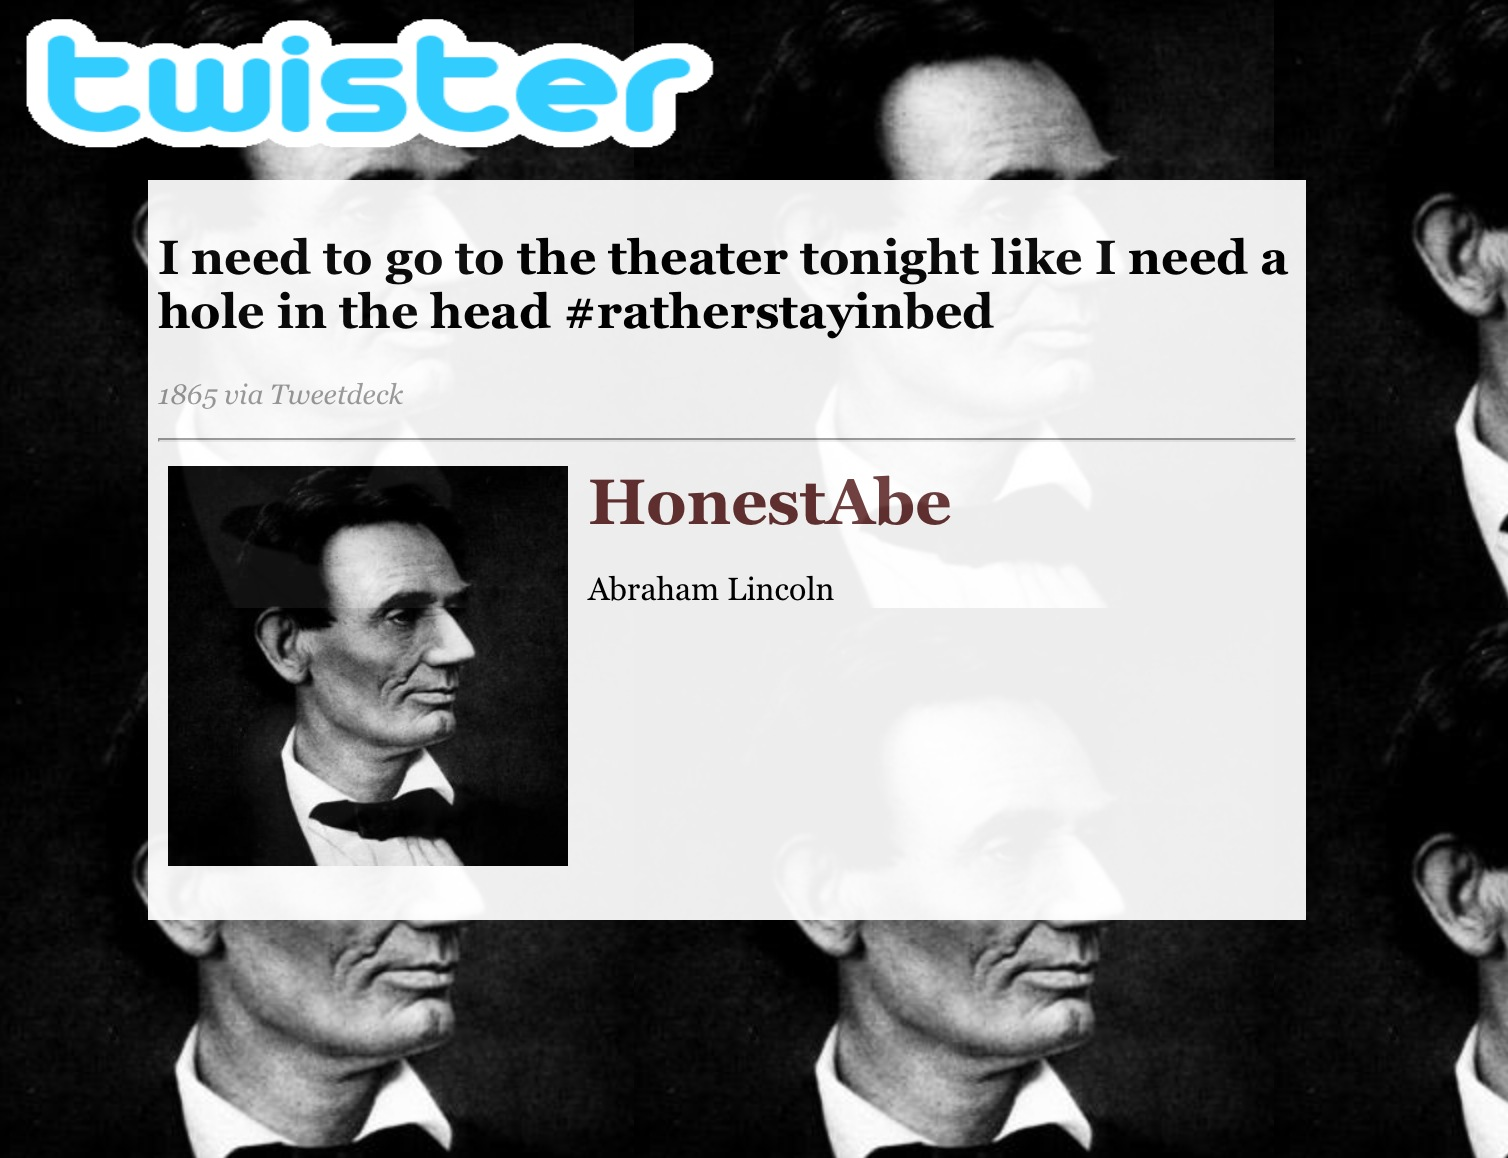 Create a tweet for a fictional/historical character